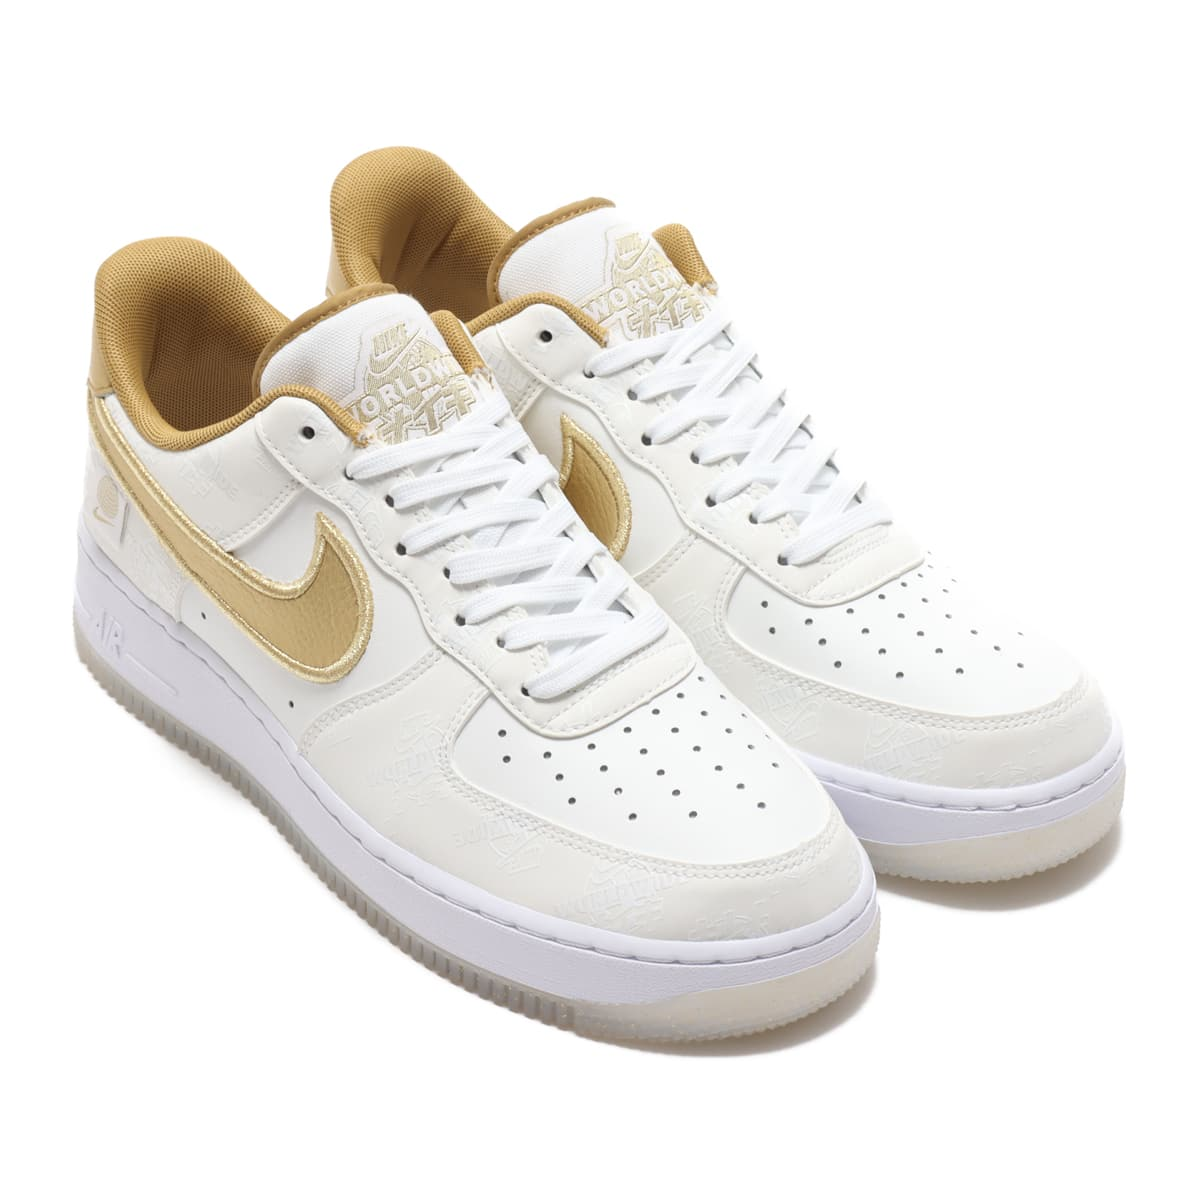 NIKE AIR FORCE 1 '07 LV8 WW WHITE/METALLIC GOLD-PLATINUM TINT 20FA-S_photo_large